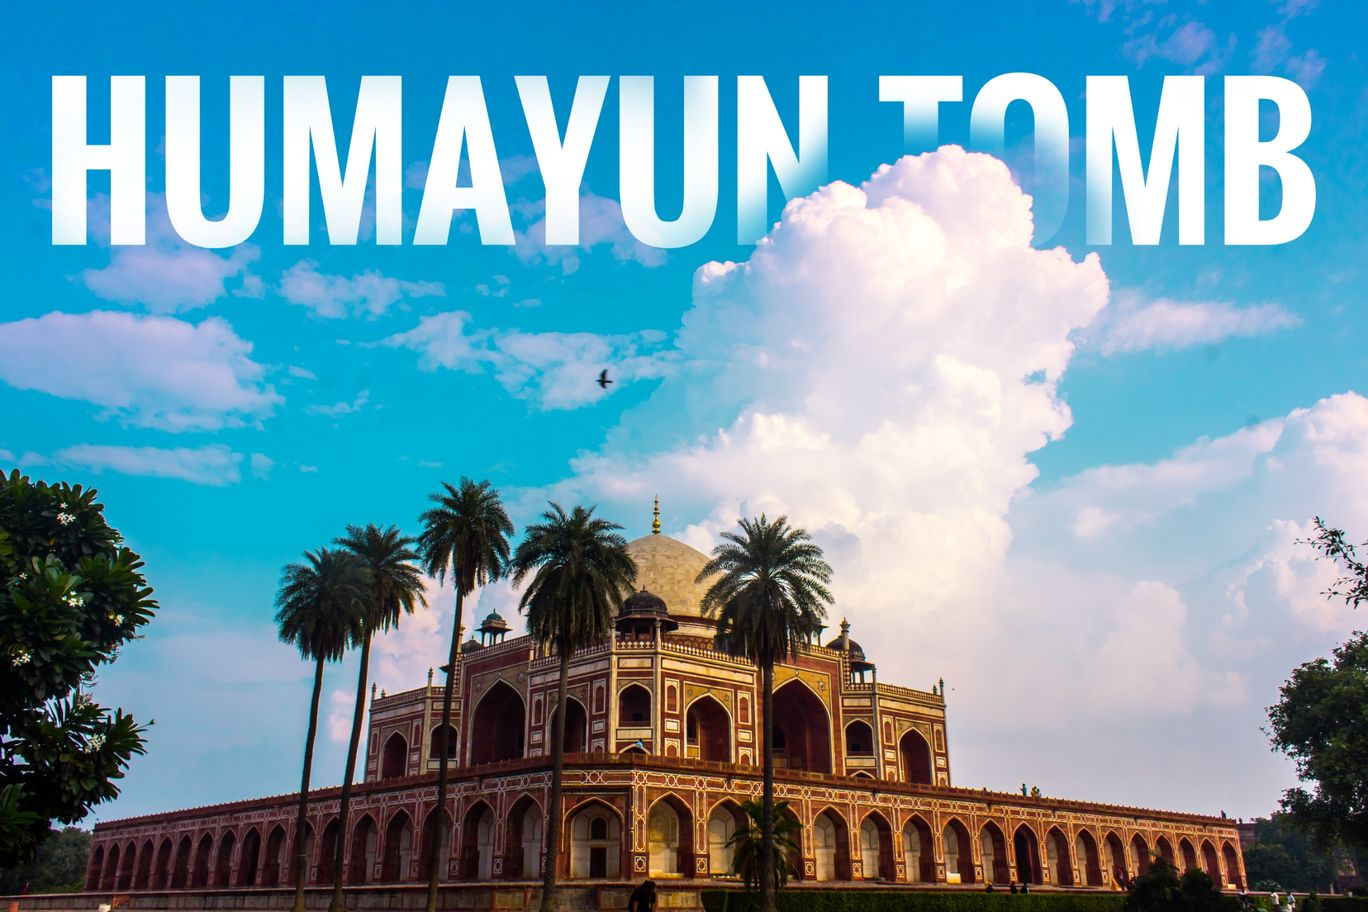 Photo of Humayun's Tomb By Living on the edge